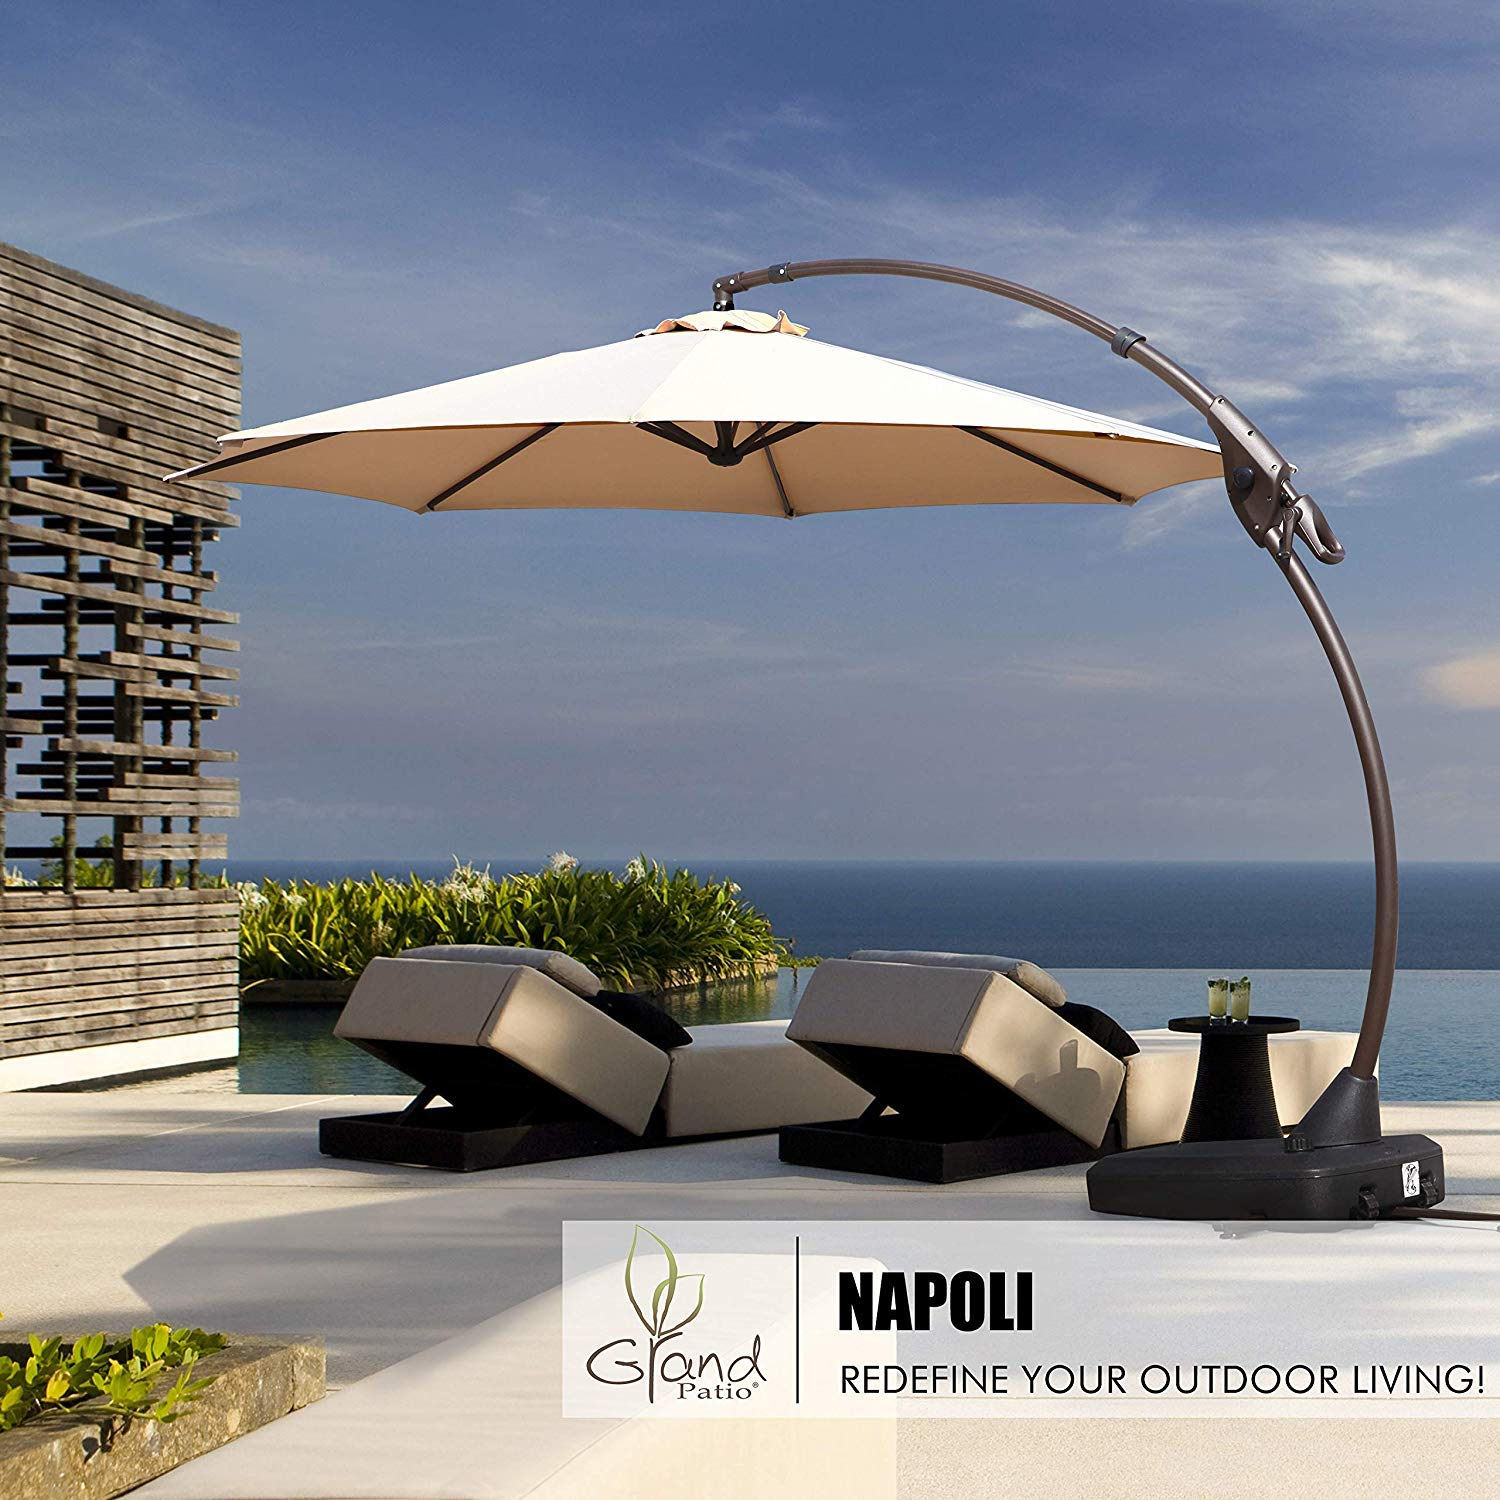 Grand patio Deluxe 11 FT Curvy Aluminum Offset Umbrella, Patio Cantilever Umbrella with Base, Champagne by Grand patio